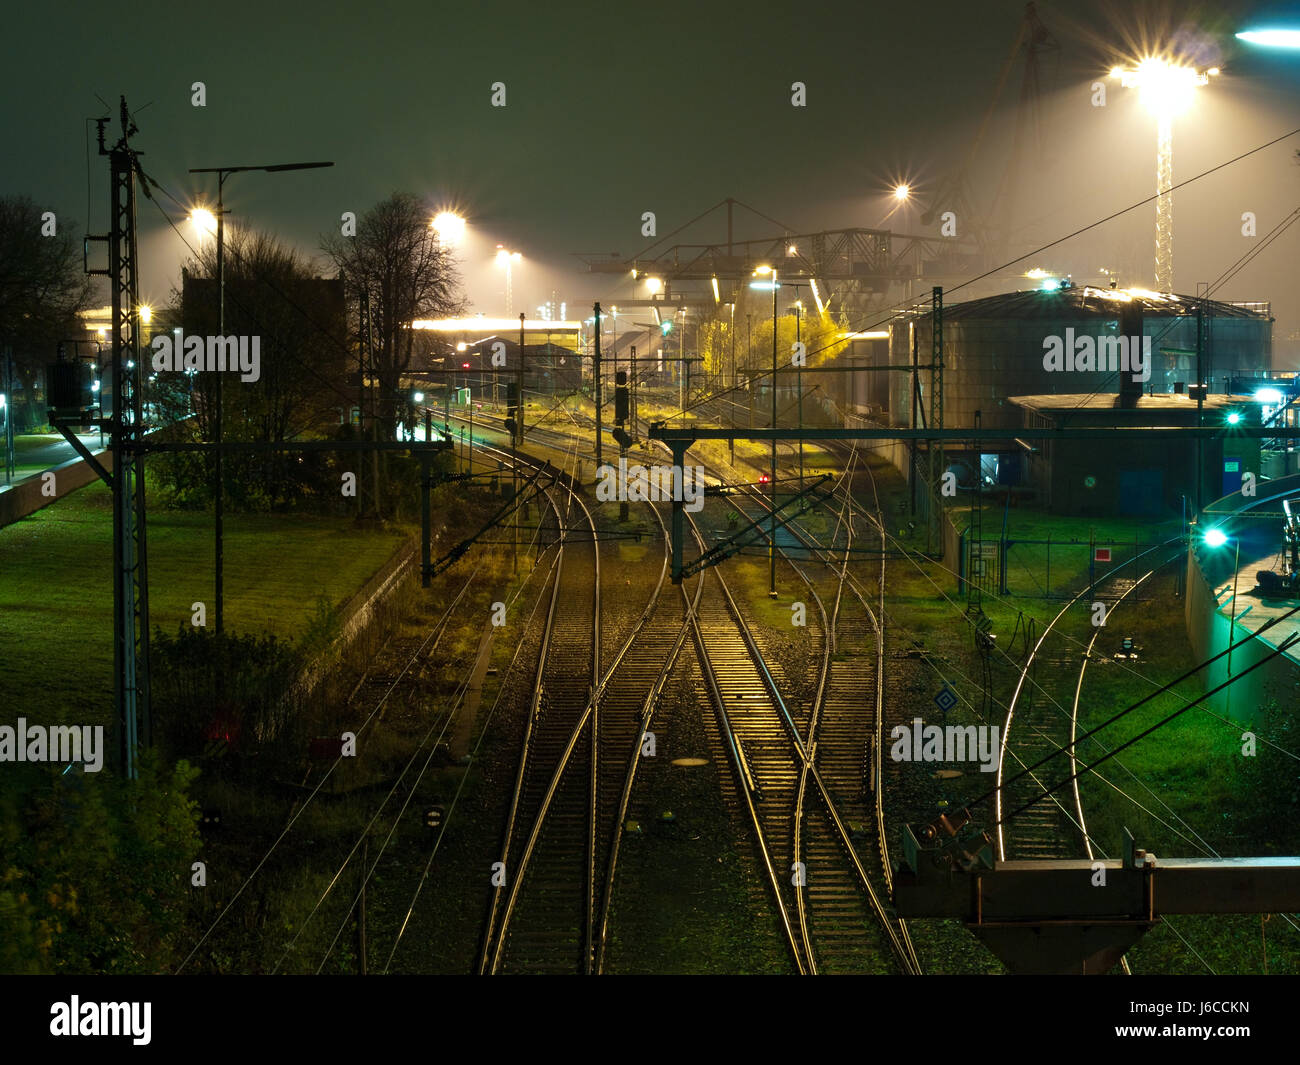 station night nighttime lights tracks yield station night nighttime lights - Stock Image : lights tracks - azcodes.com